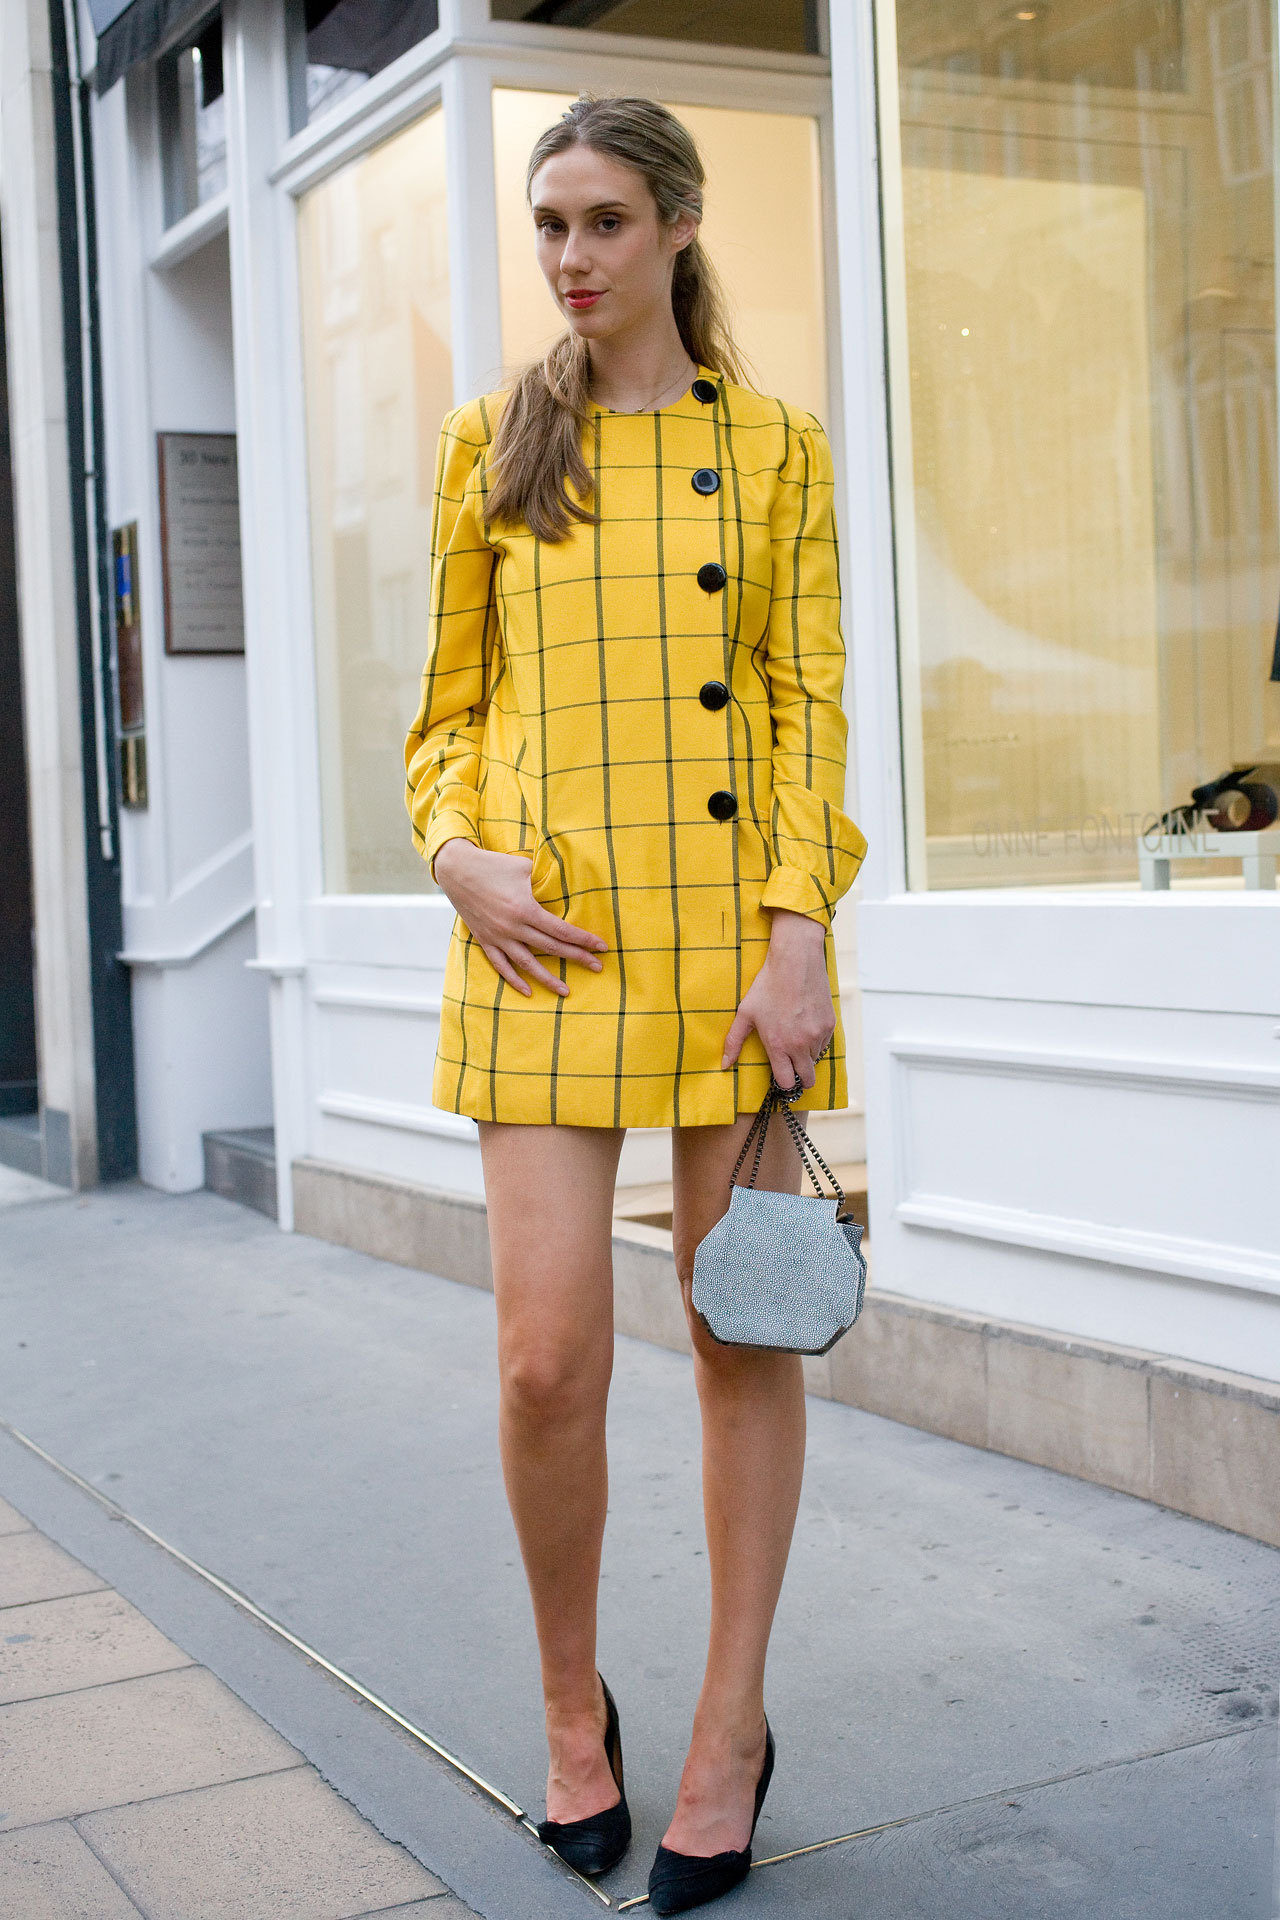 jessica hannan photographed for VOGUE Street Chic.